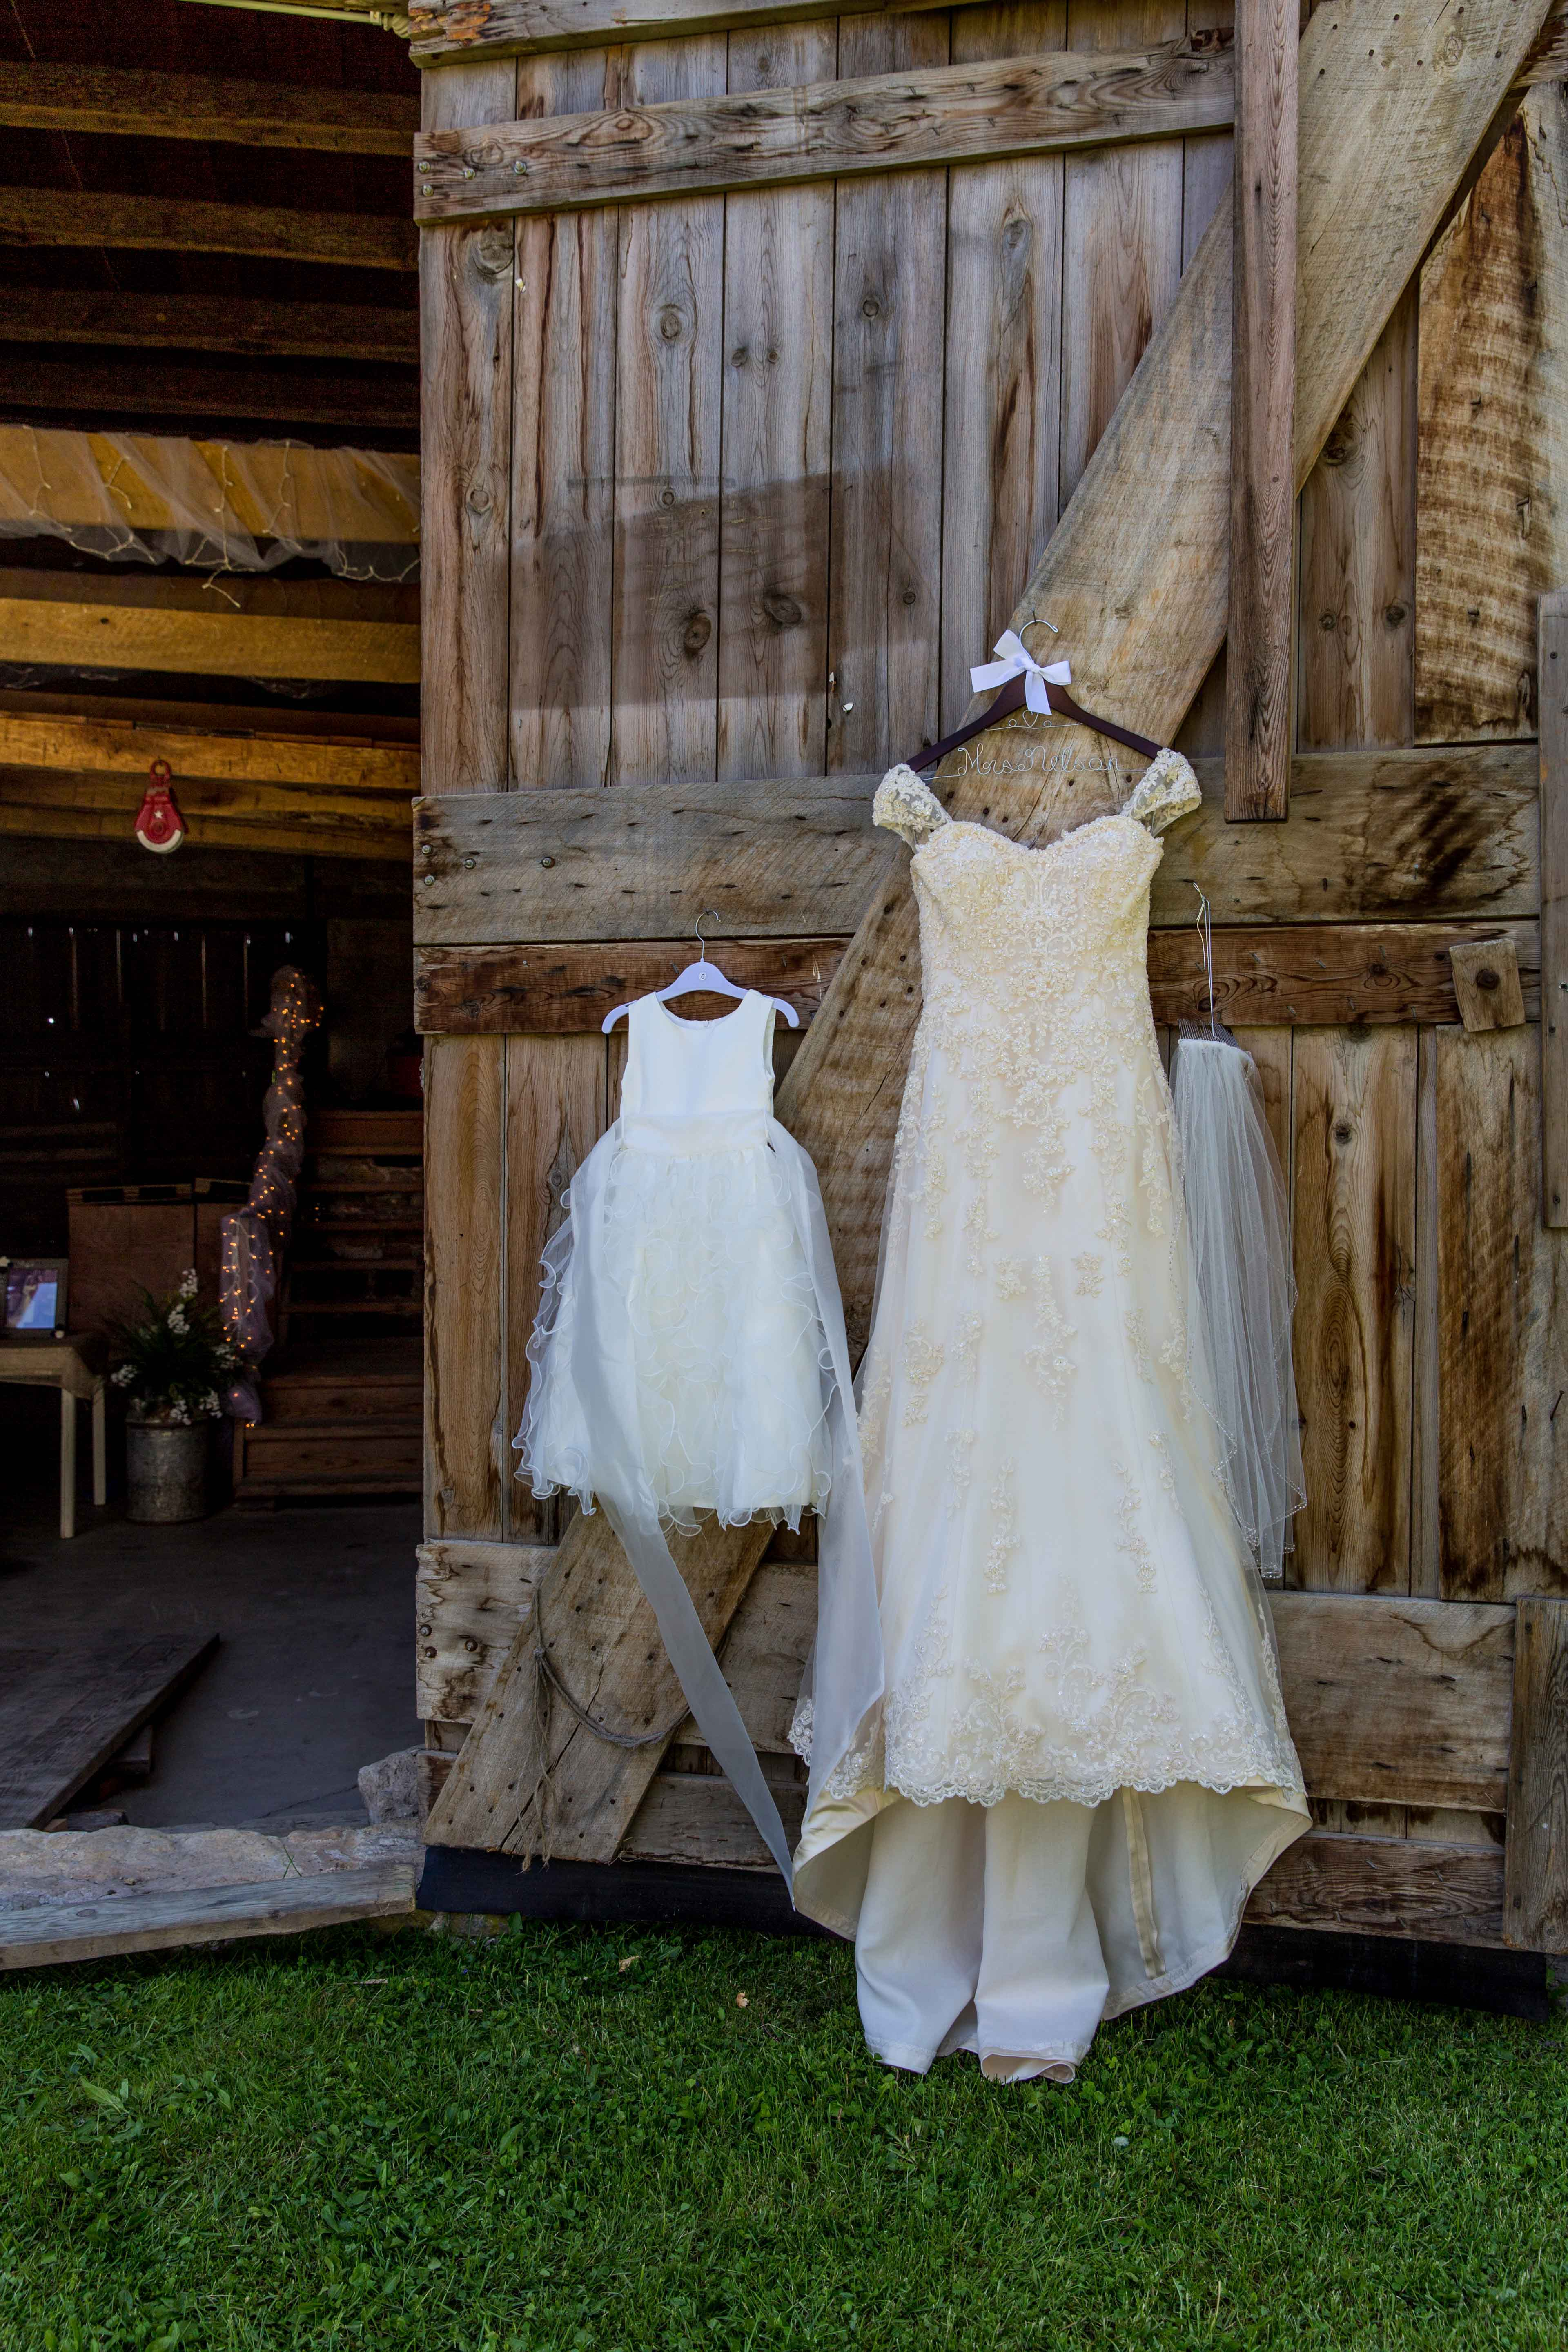 Wedding dress on barn wedding door